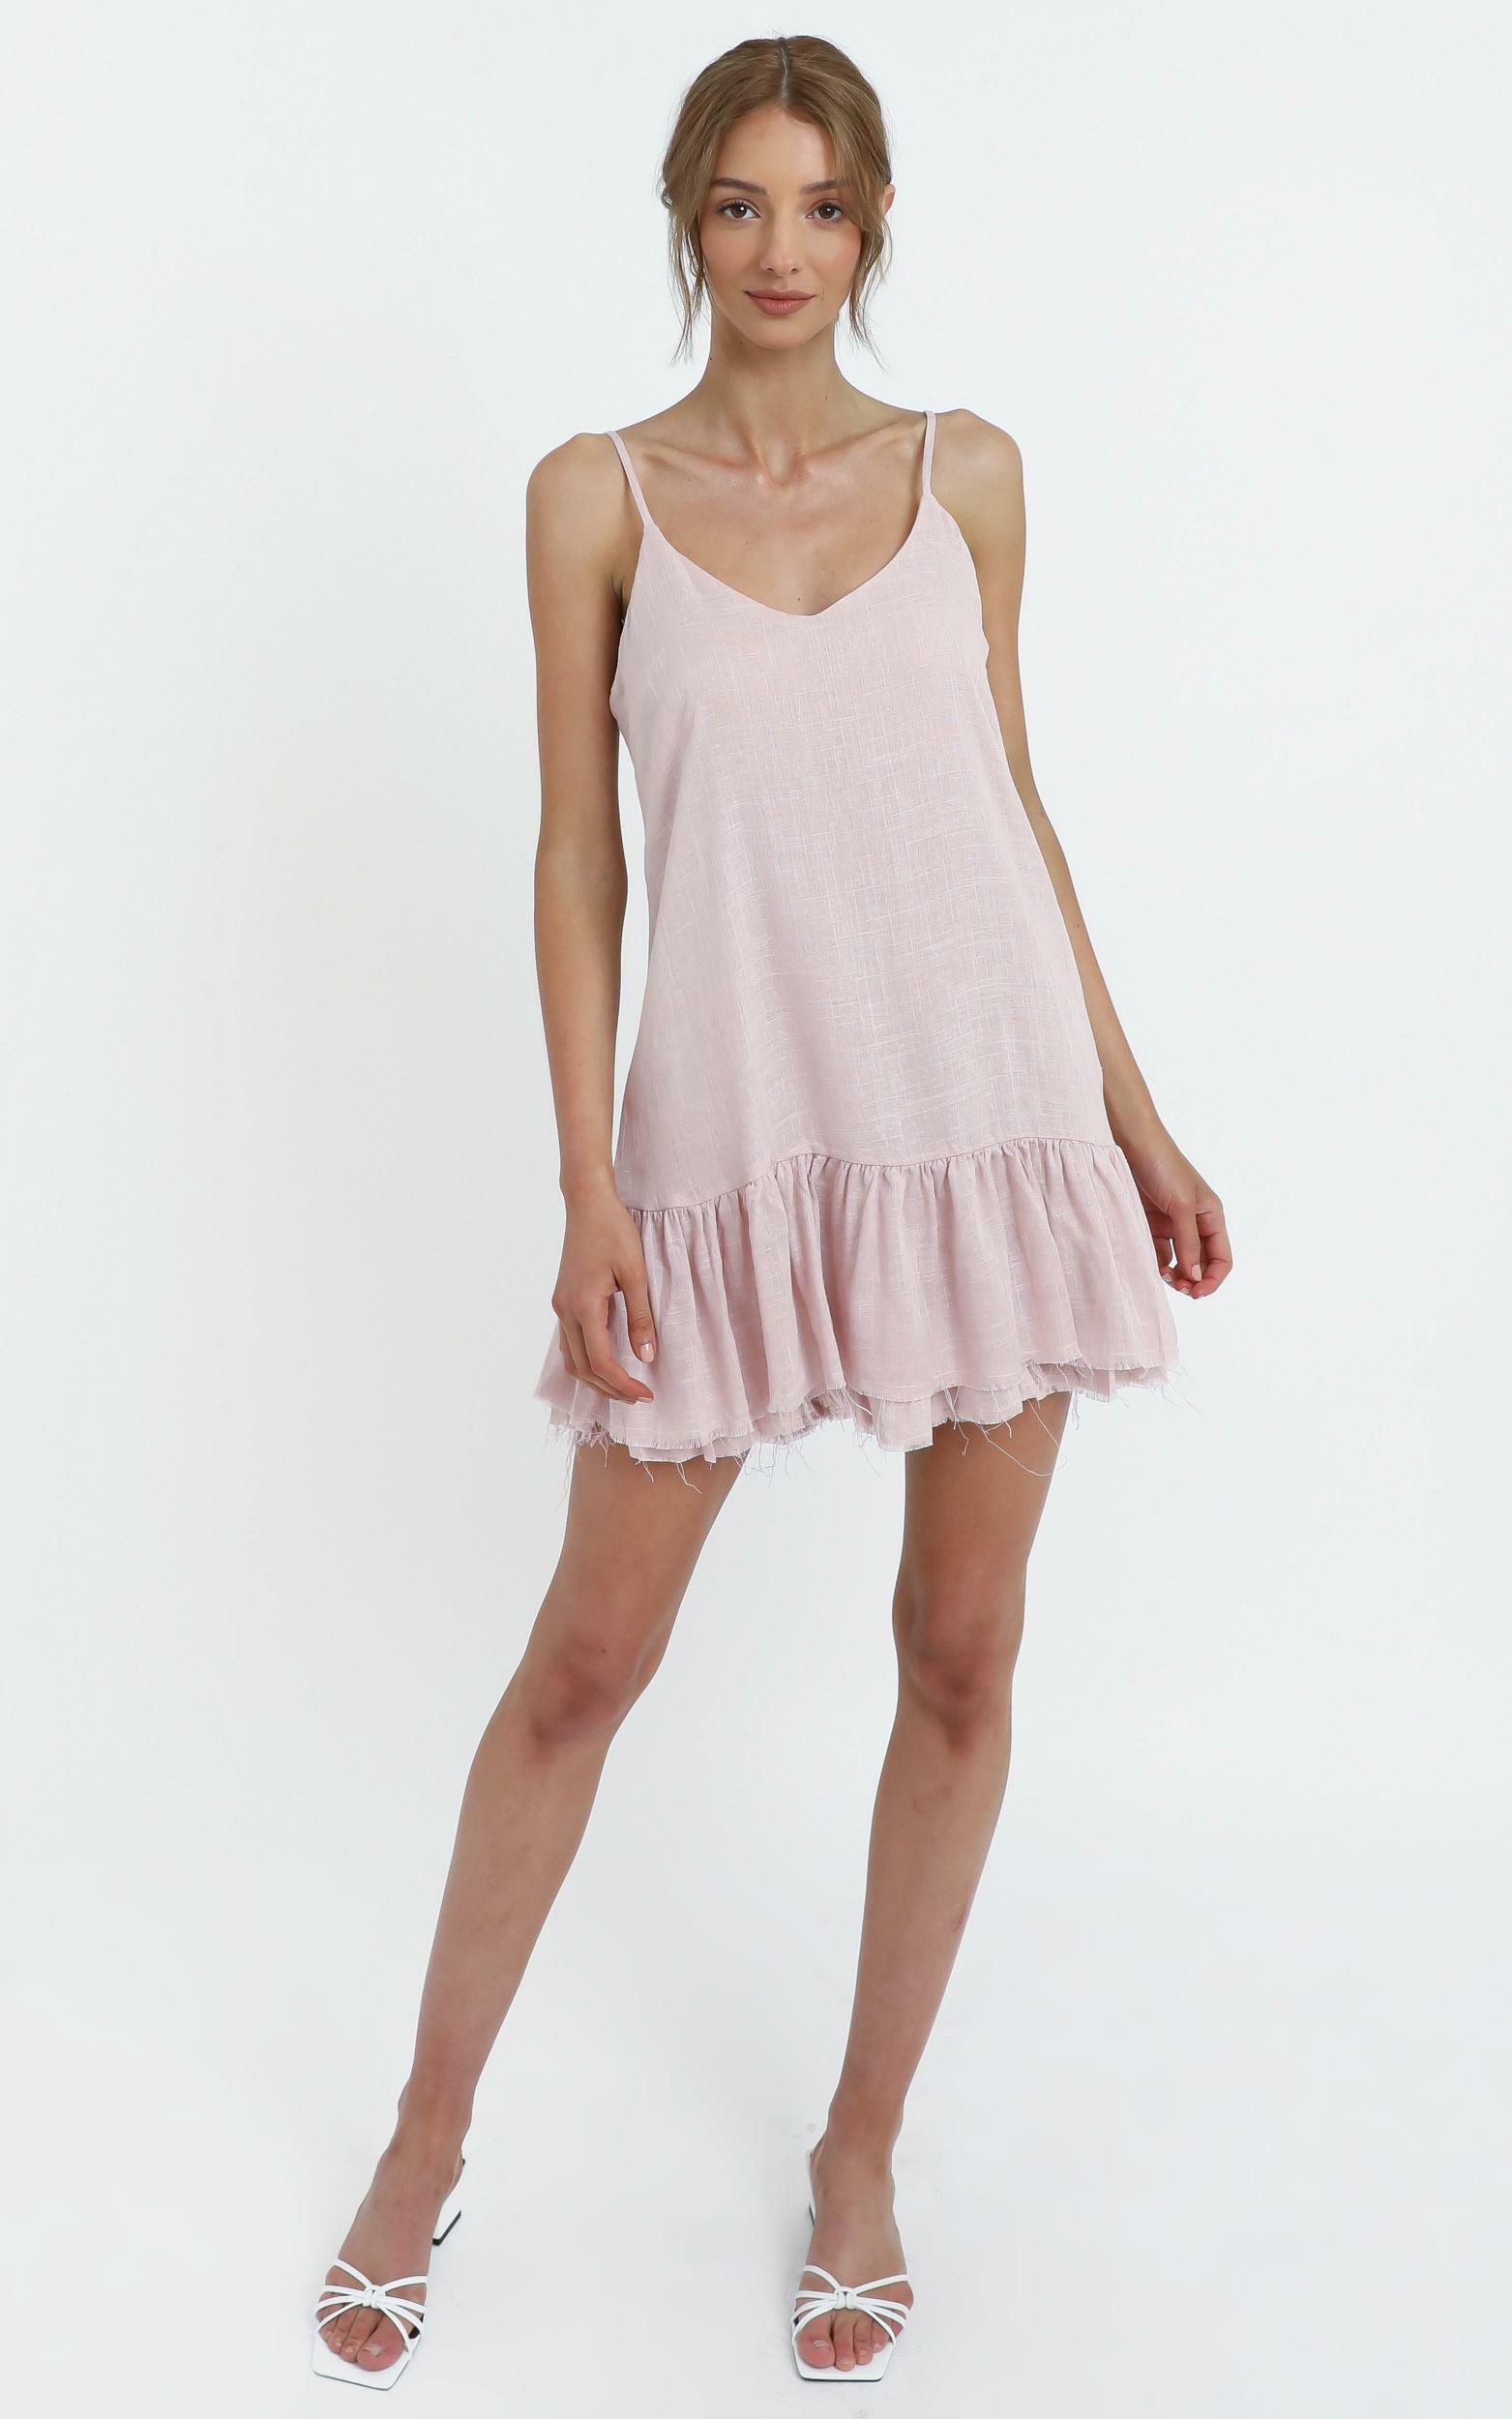 Gypsy Dress in Blush - 12 (L), PNK1, hi-res image number null